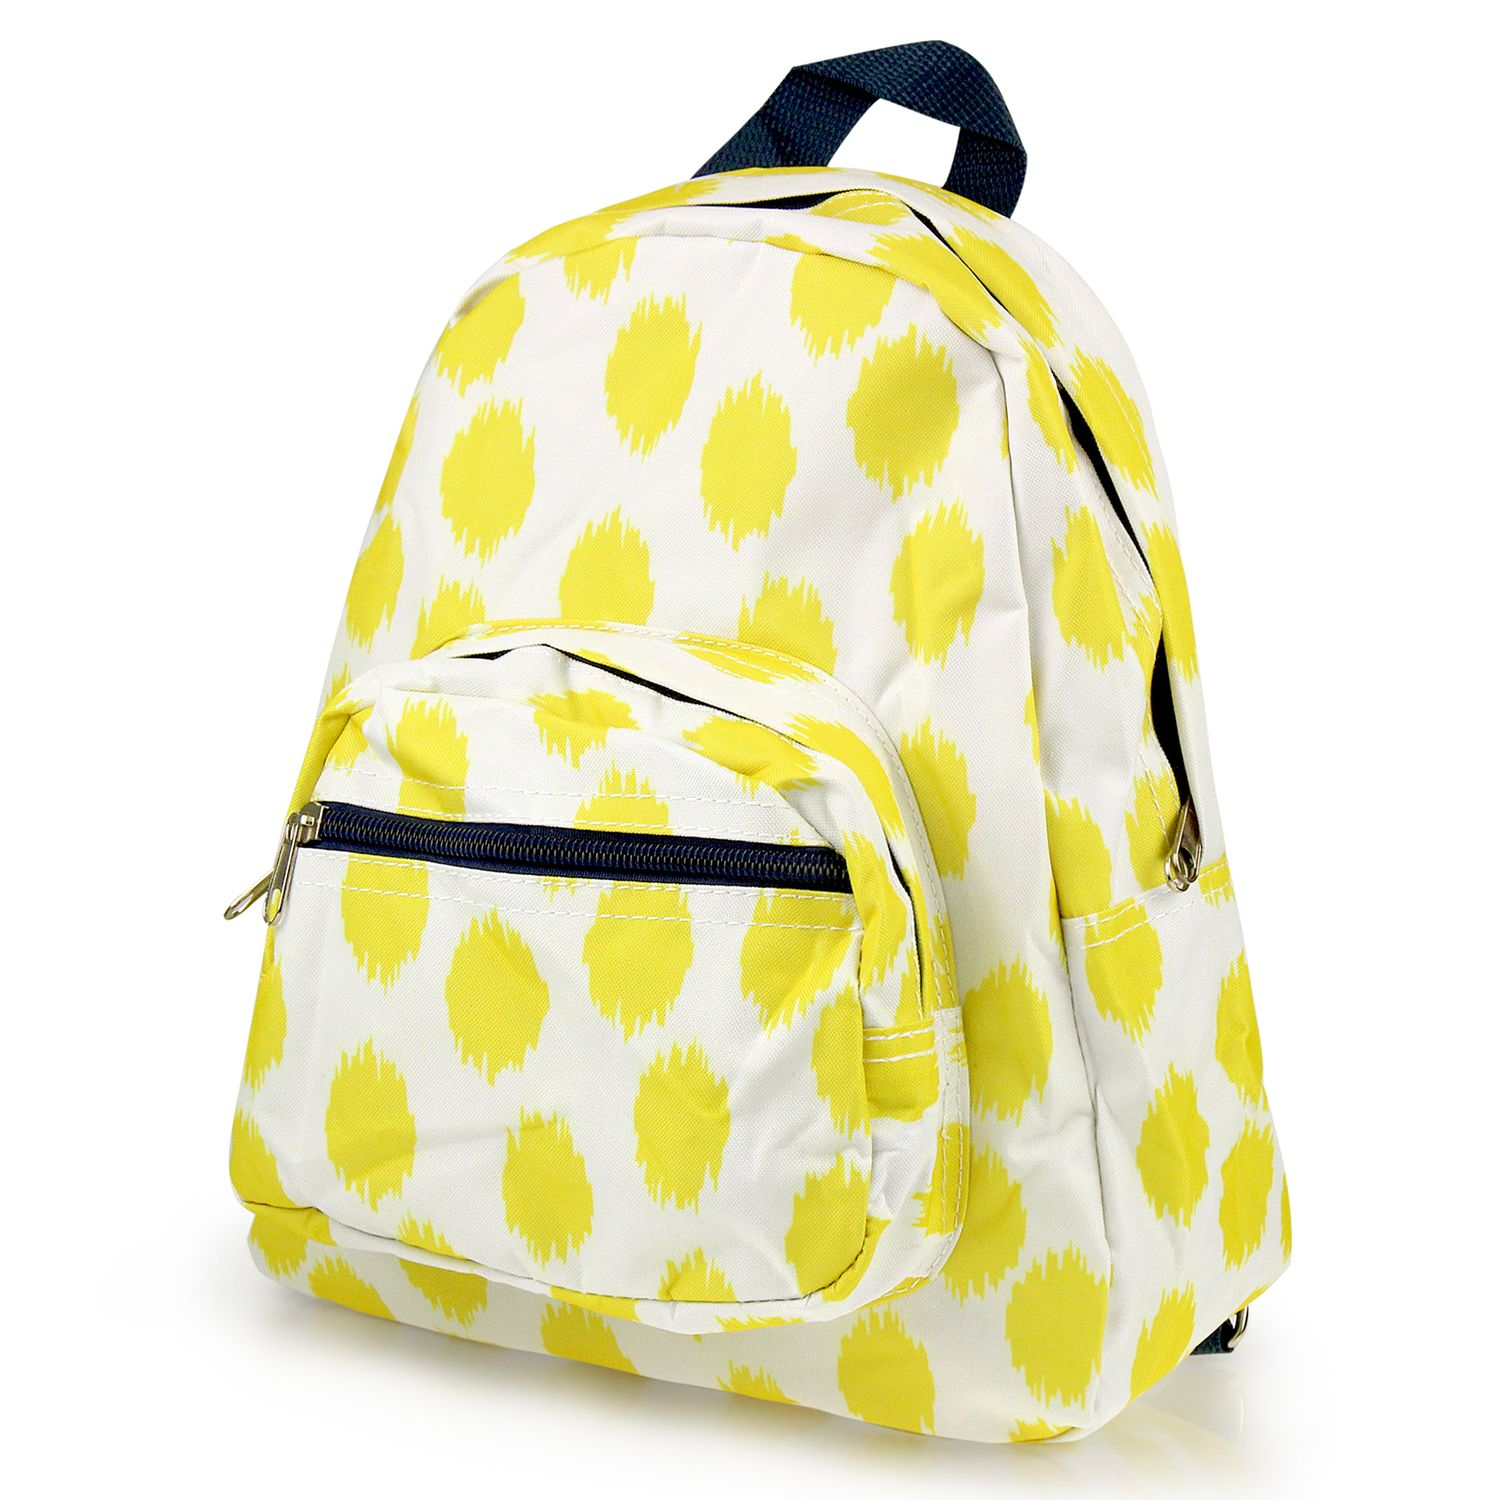 Kids Small Backpack Outdoor by Zodaca Bright Stylish Shoulder School Zipper Bag Adjustable Strap Yellow Dots with Blue... by